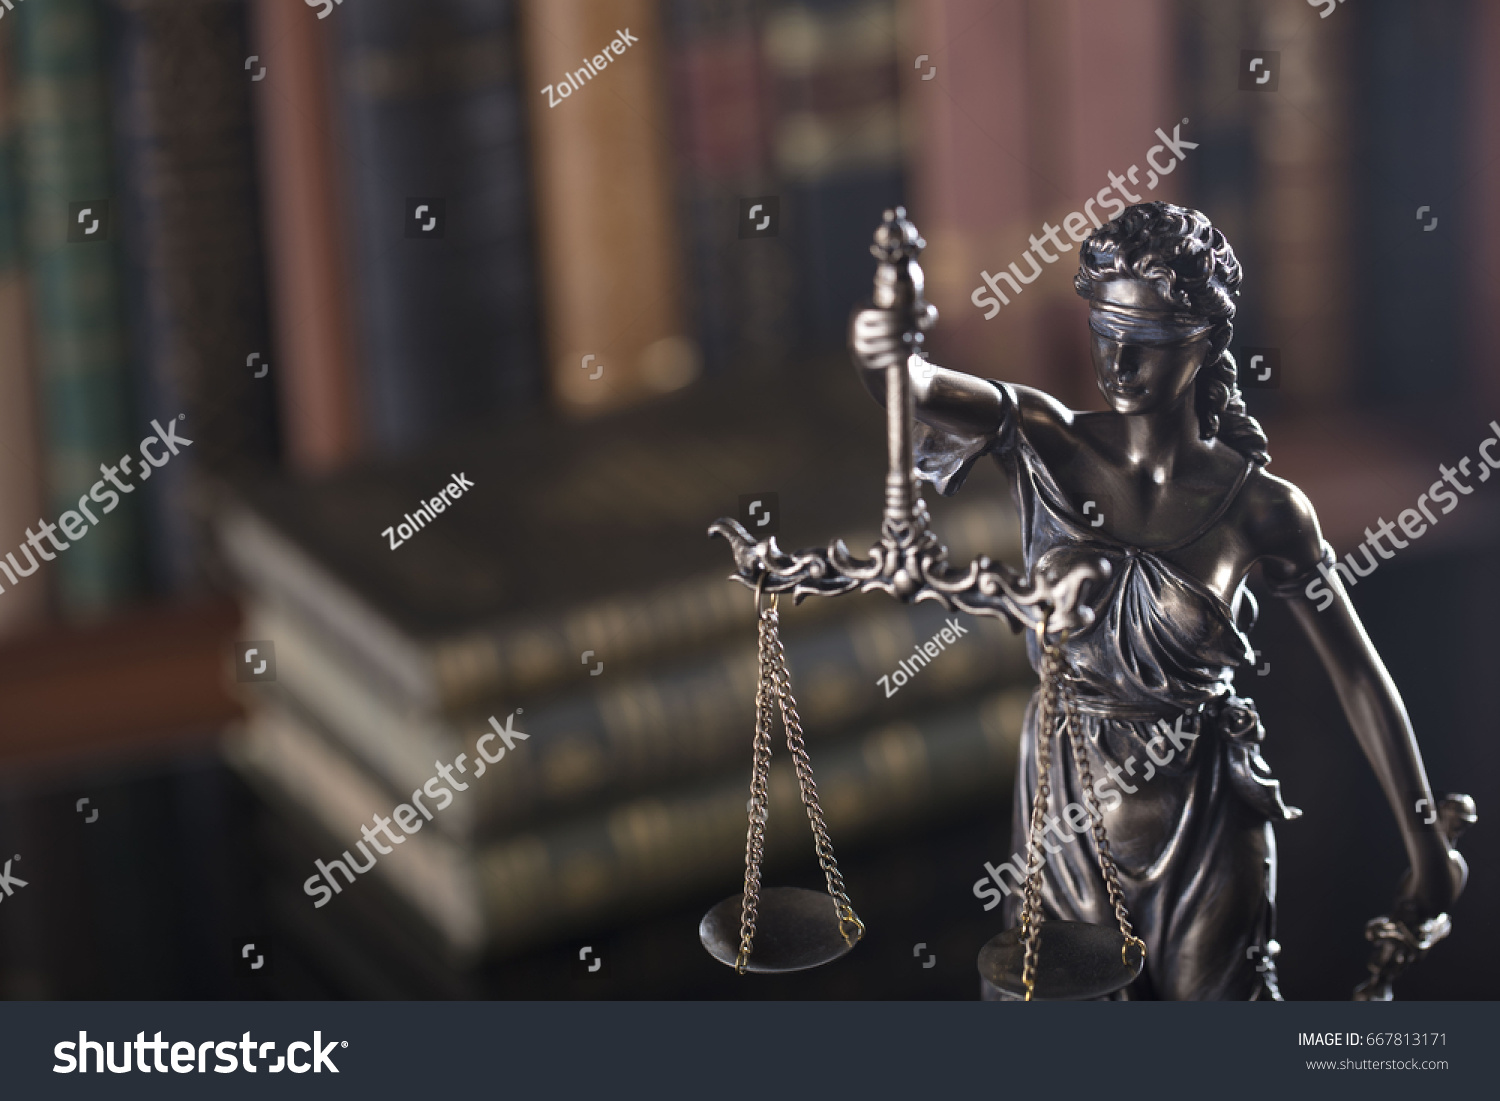 Criminal Justice Law Symbols Gavel Scales Stock Photo (Edit